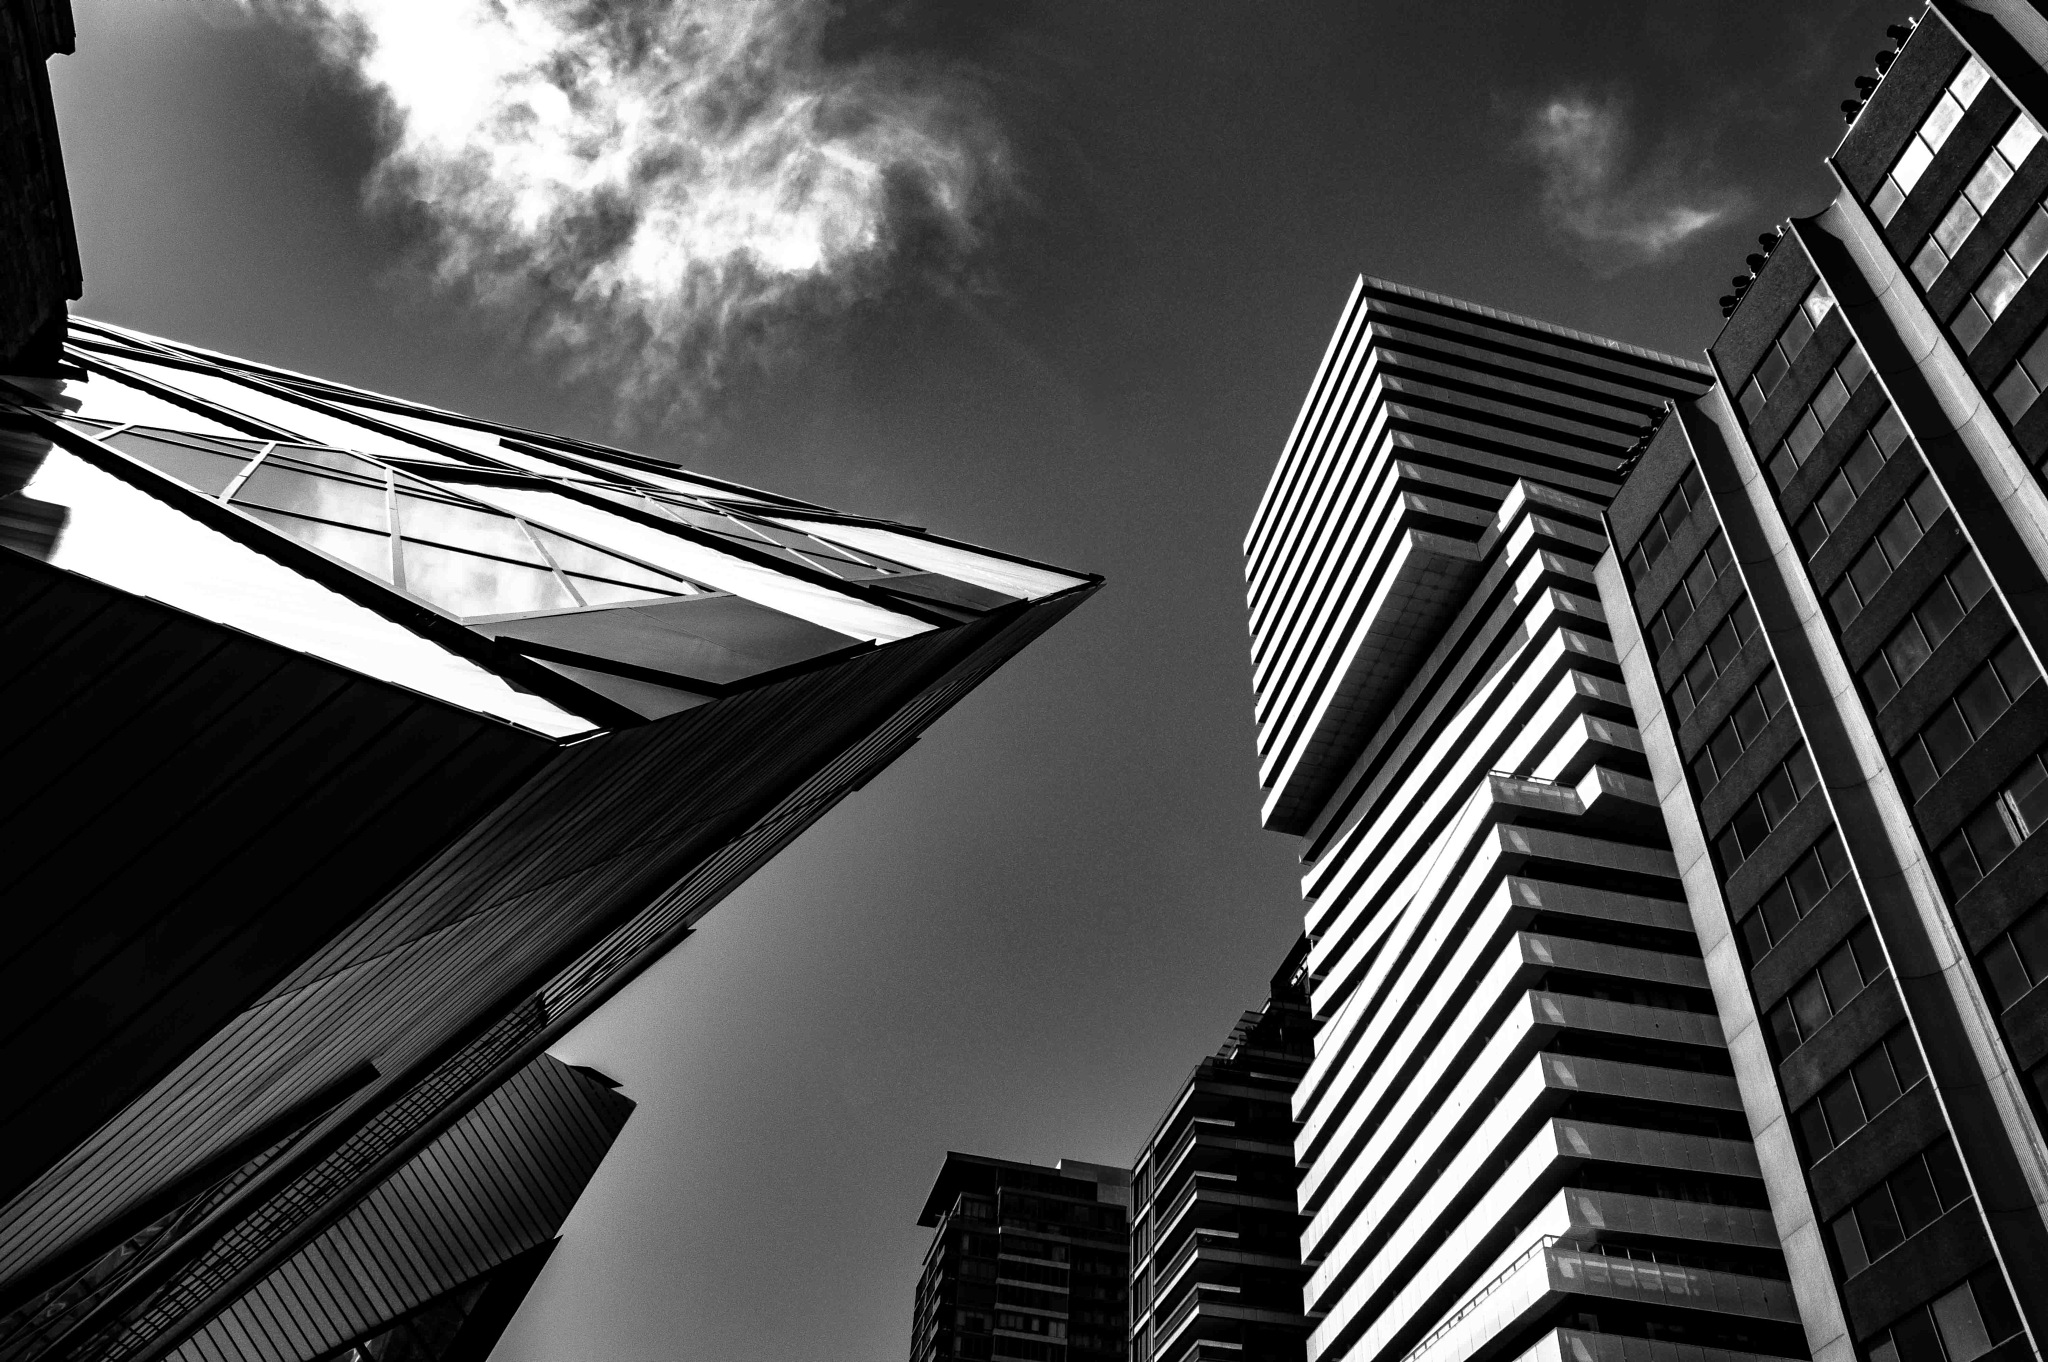 Urban Toronto, Architecture Contrasts by Pmartel